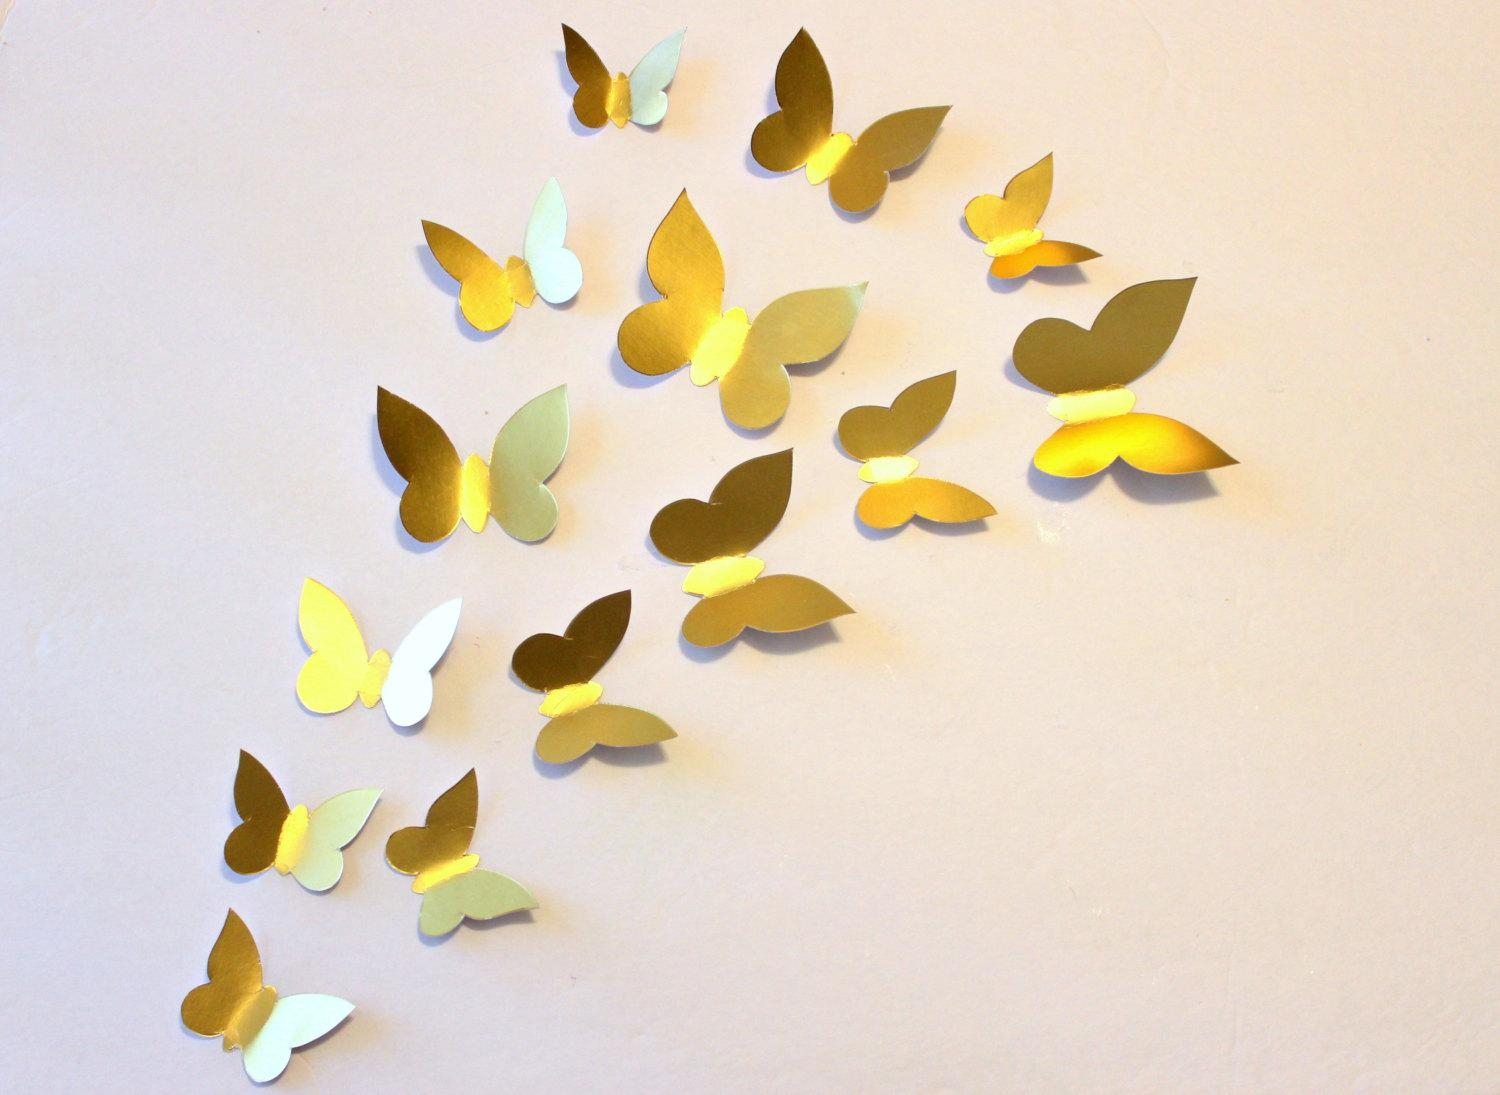 Decor : 5 Butterfly Wall Decor Patterns Gold Butterfly Gold Wall With Gold Wall Art Stickers (View 18 of 20)